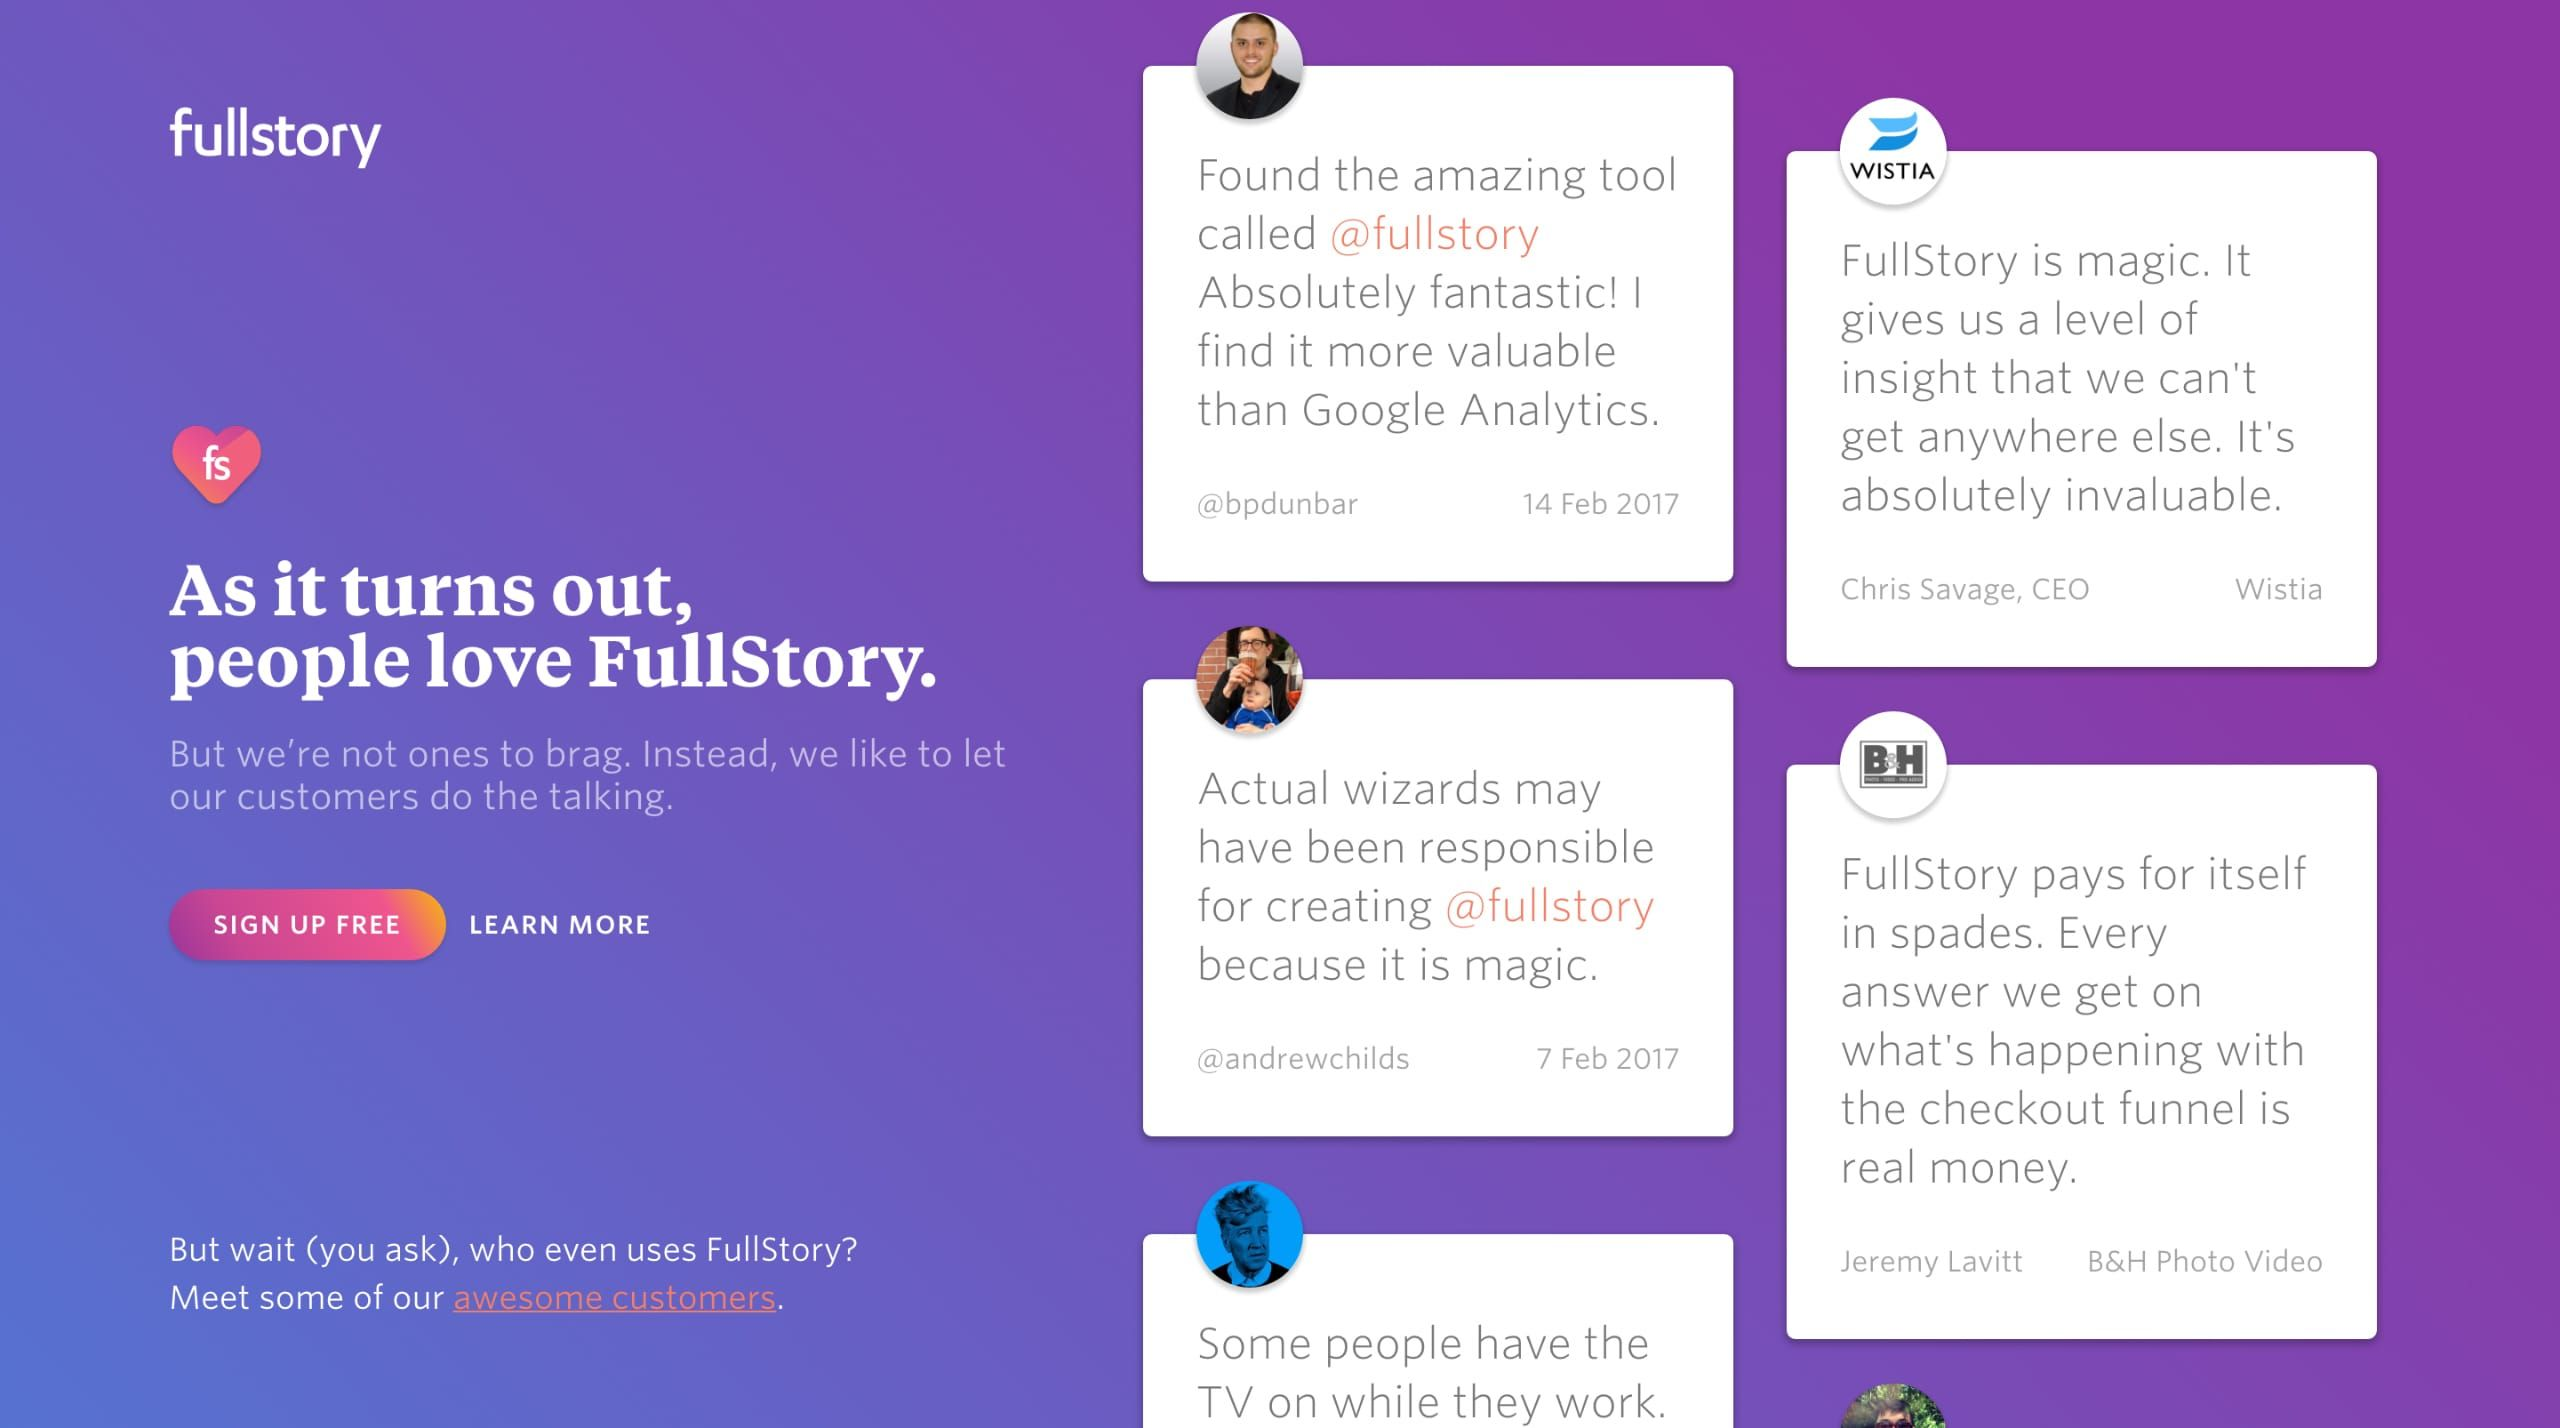 little marketing page by FullStory that showcases